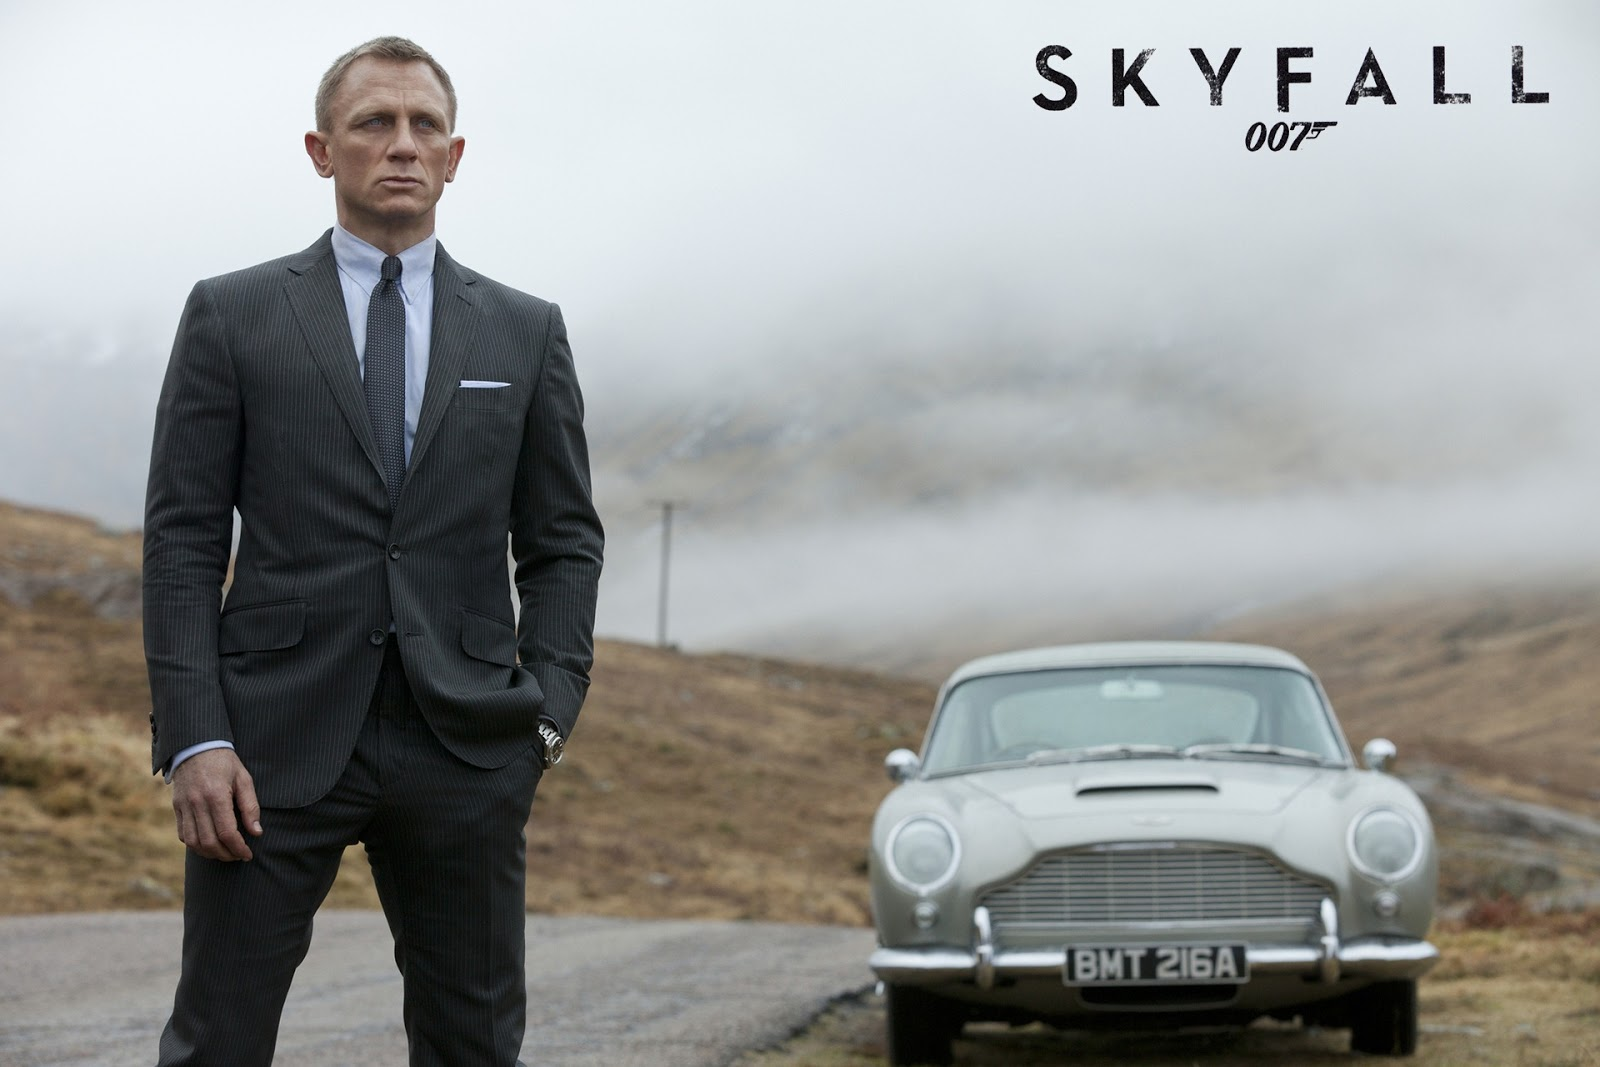 Bond 007 Skyfall HD Wallpapers for Iphone iPhone Wallpapers Site 1600x1067